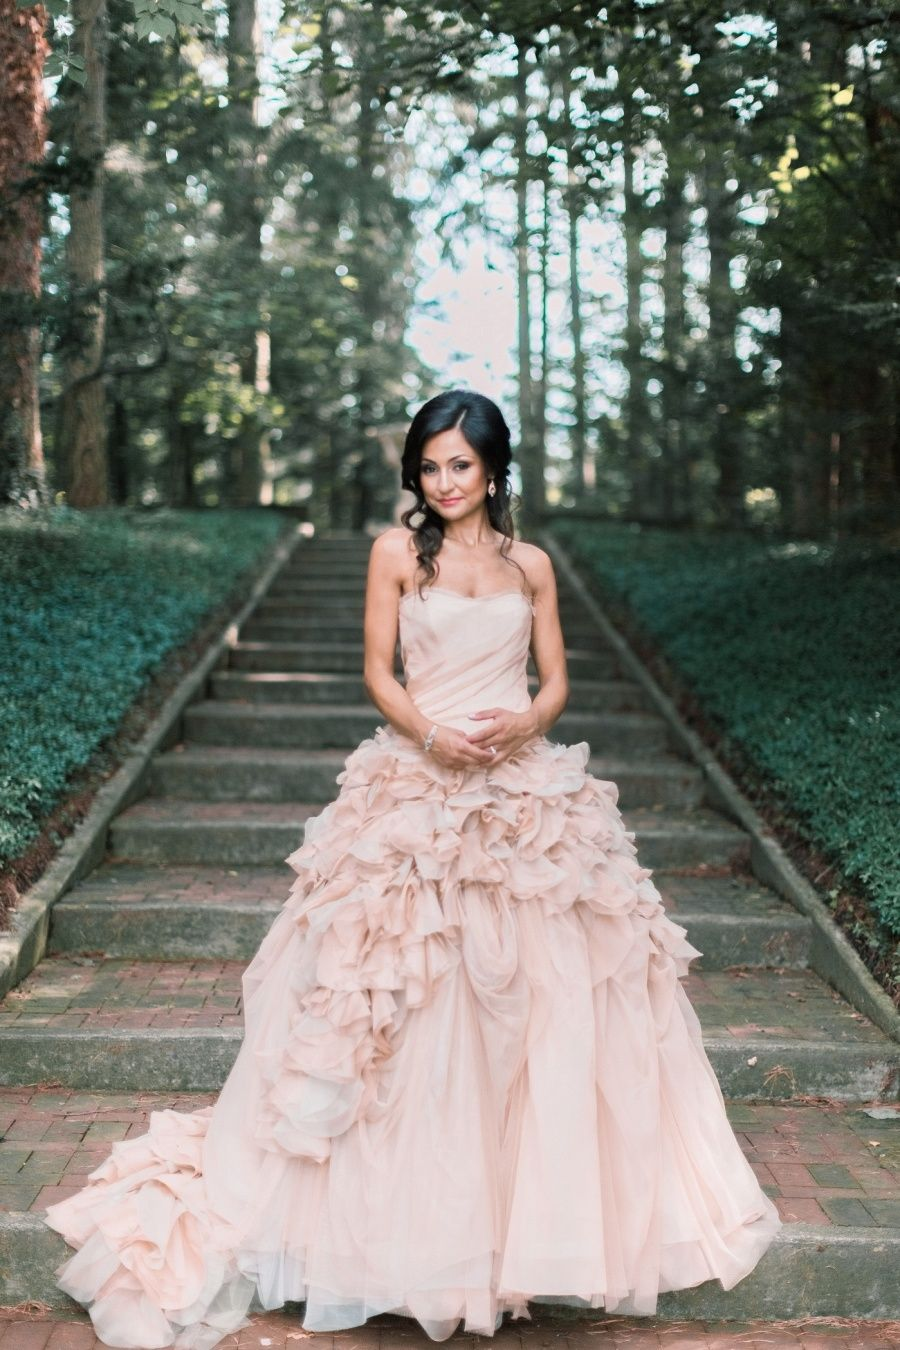 Vera wang pink wedding dress  Elegant Cranbrook Gardens u Art Museum Wedding  Museum wedding